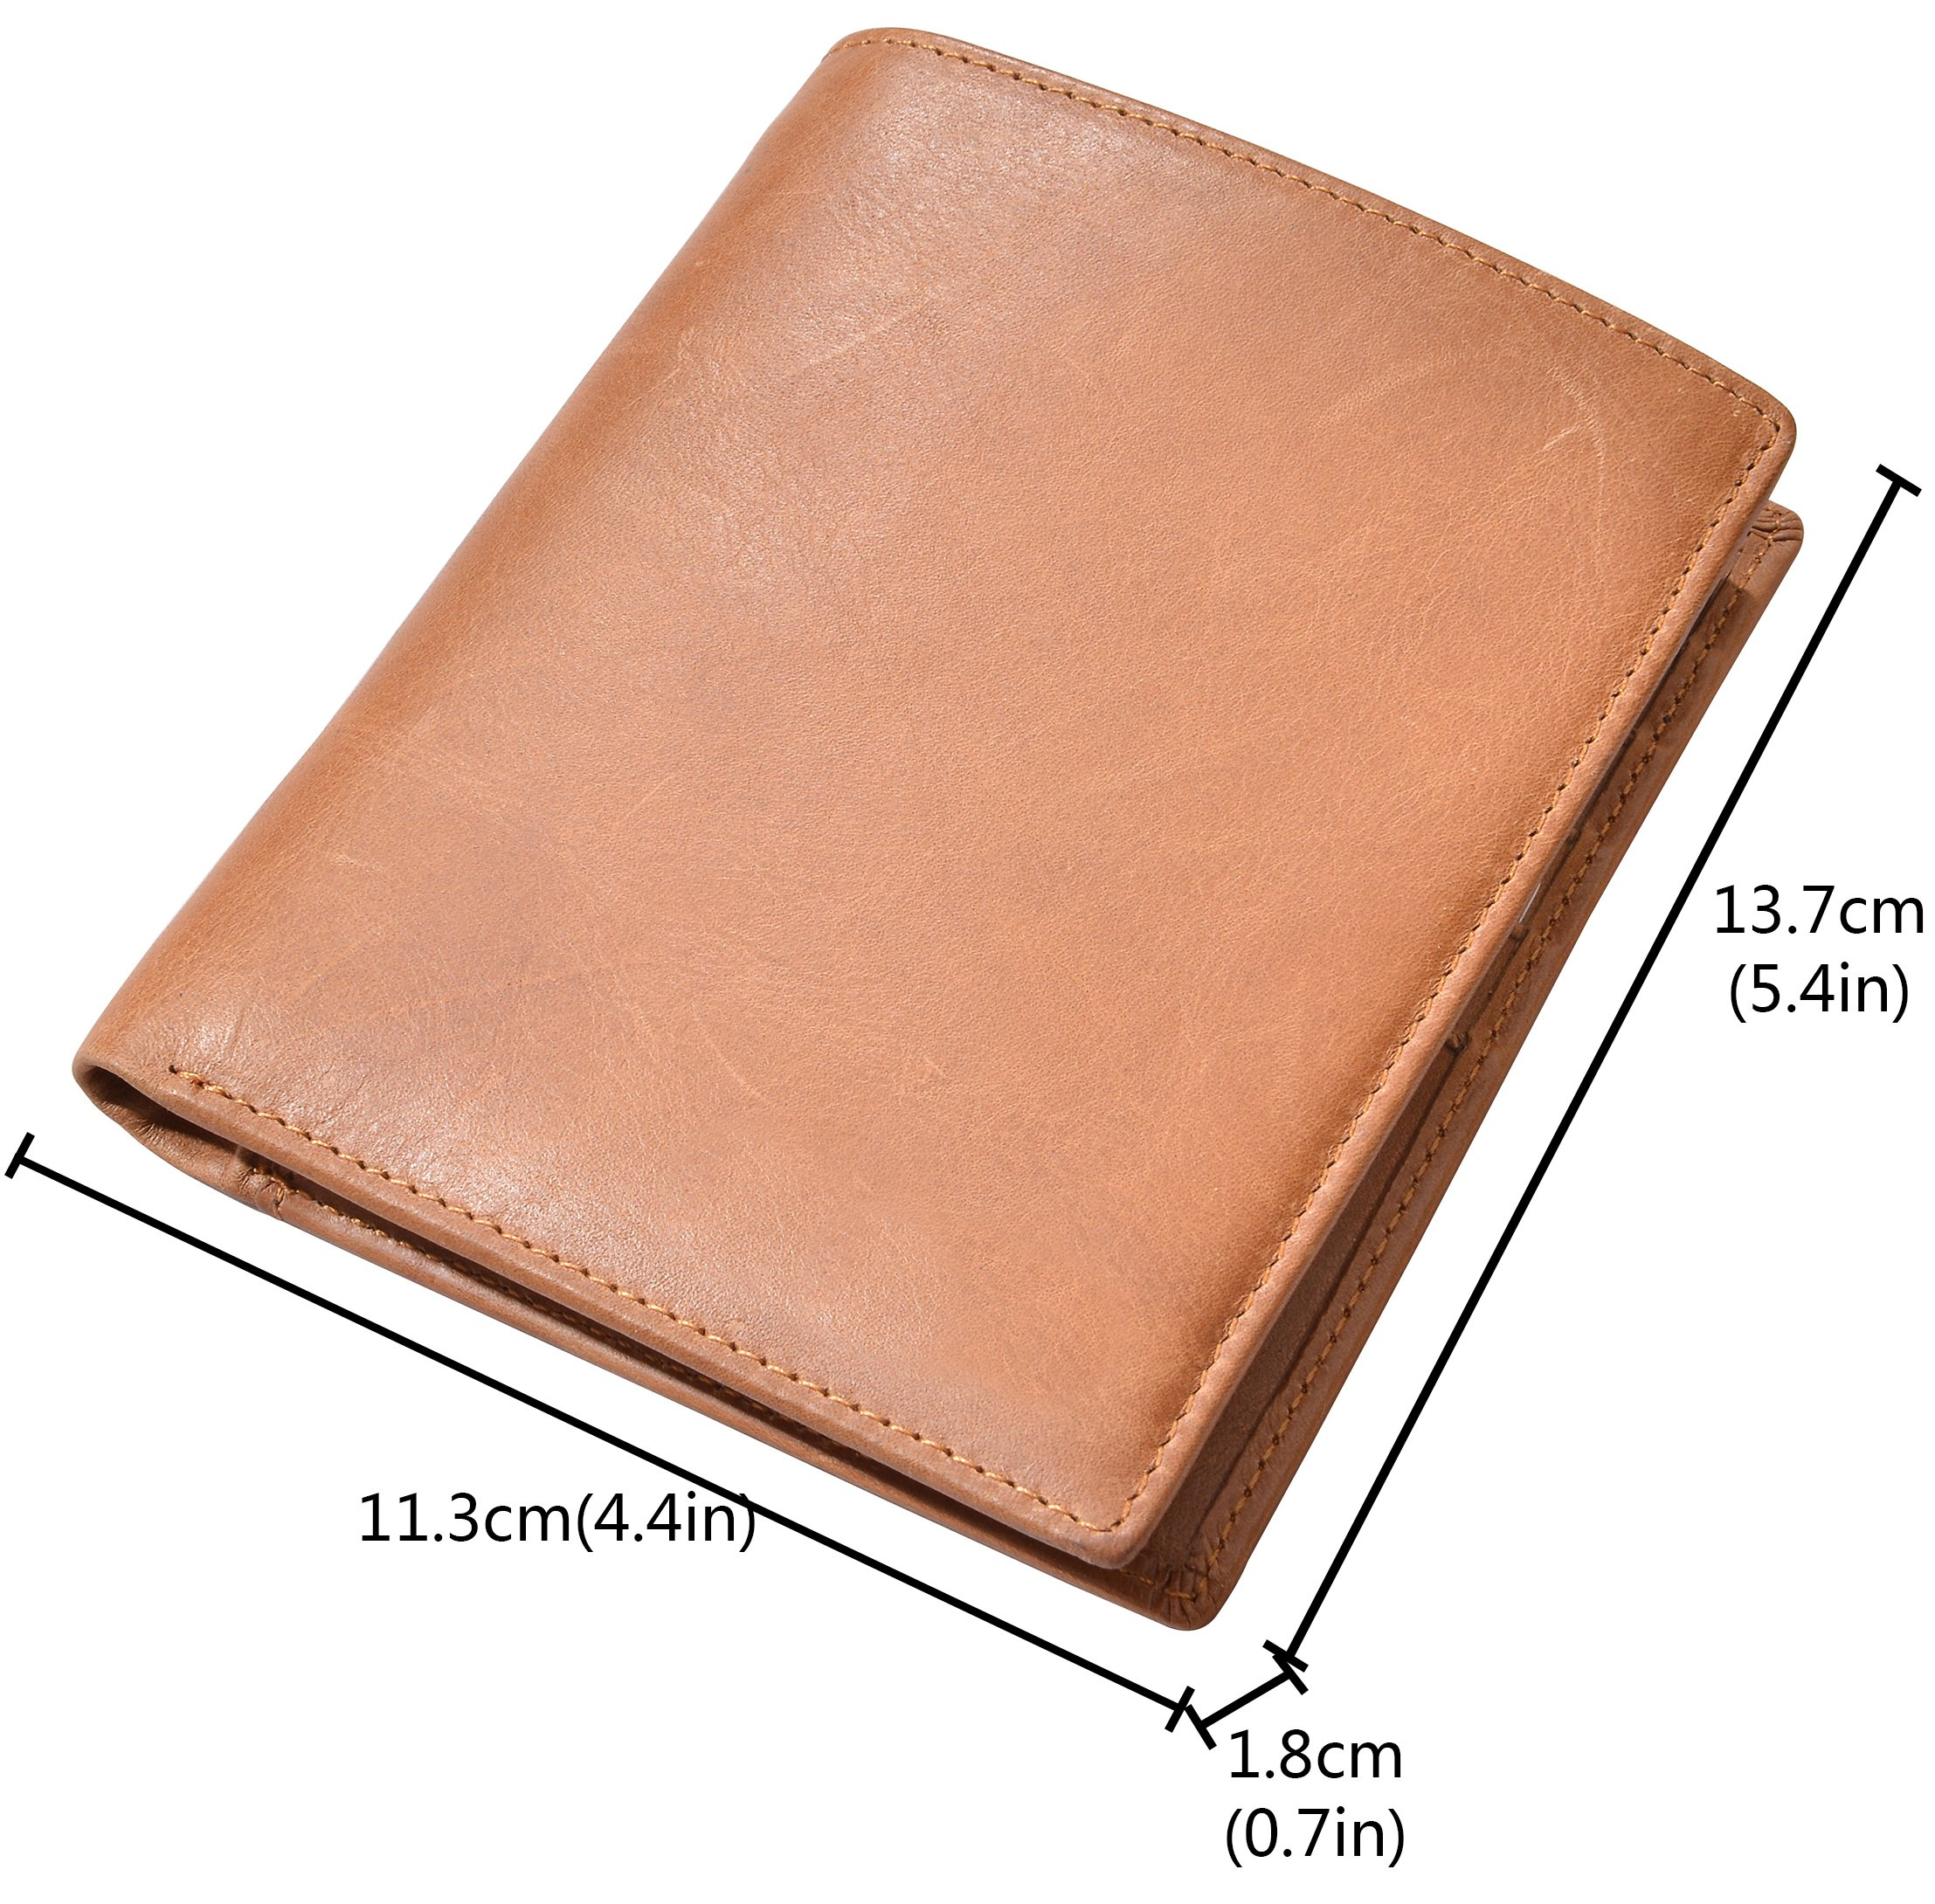 Outrip Genuine Leather Passport Wallet RFID Blocking Travel Card/Passport Holder (Brown) by Outrip (Image #5)